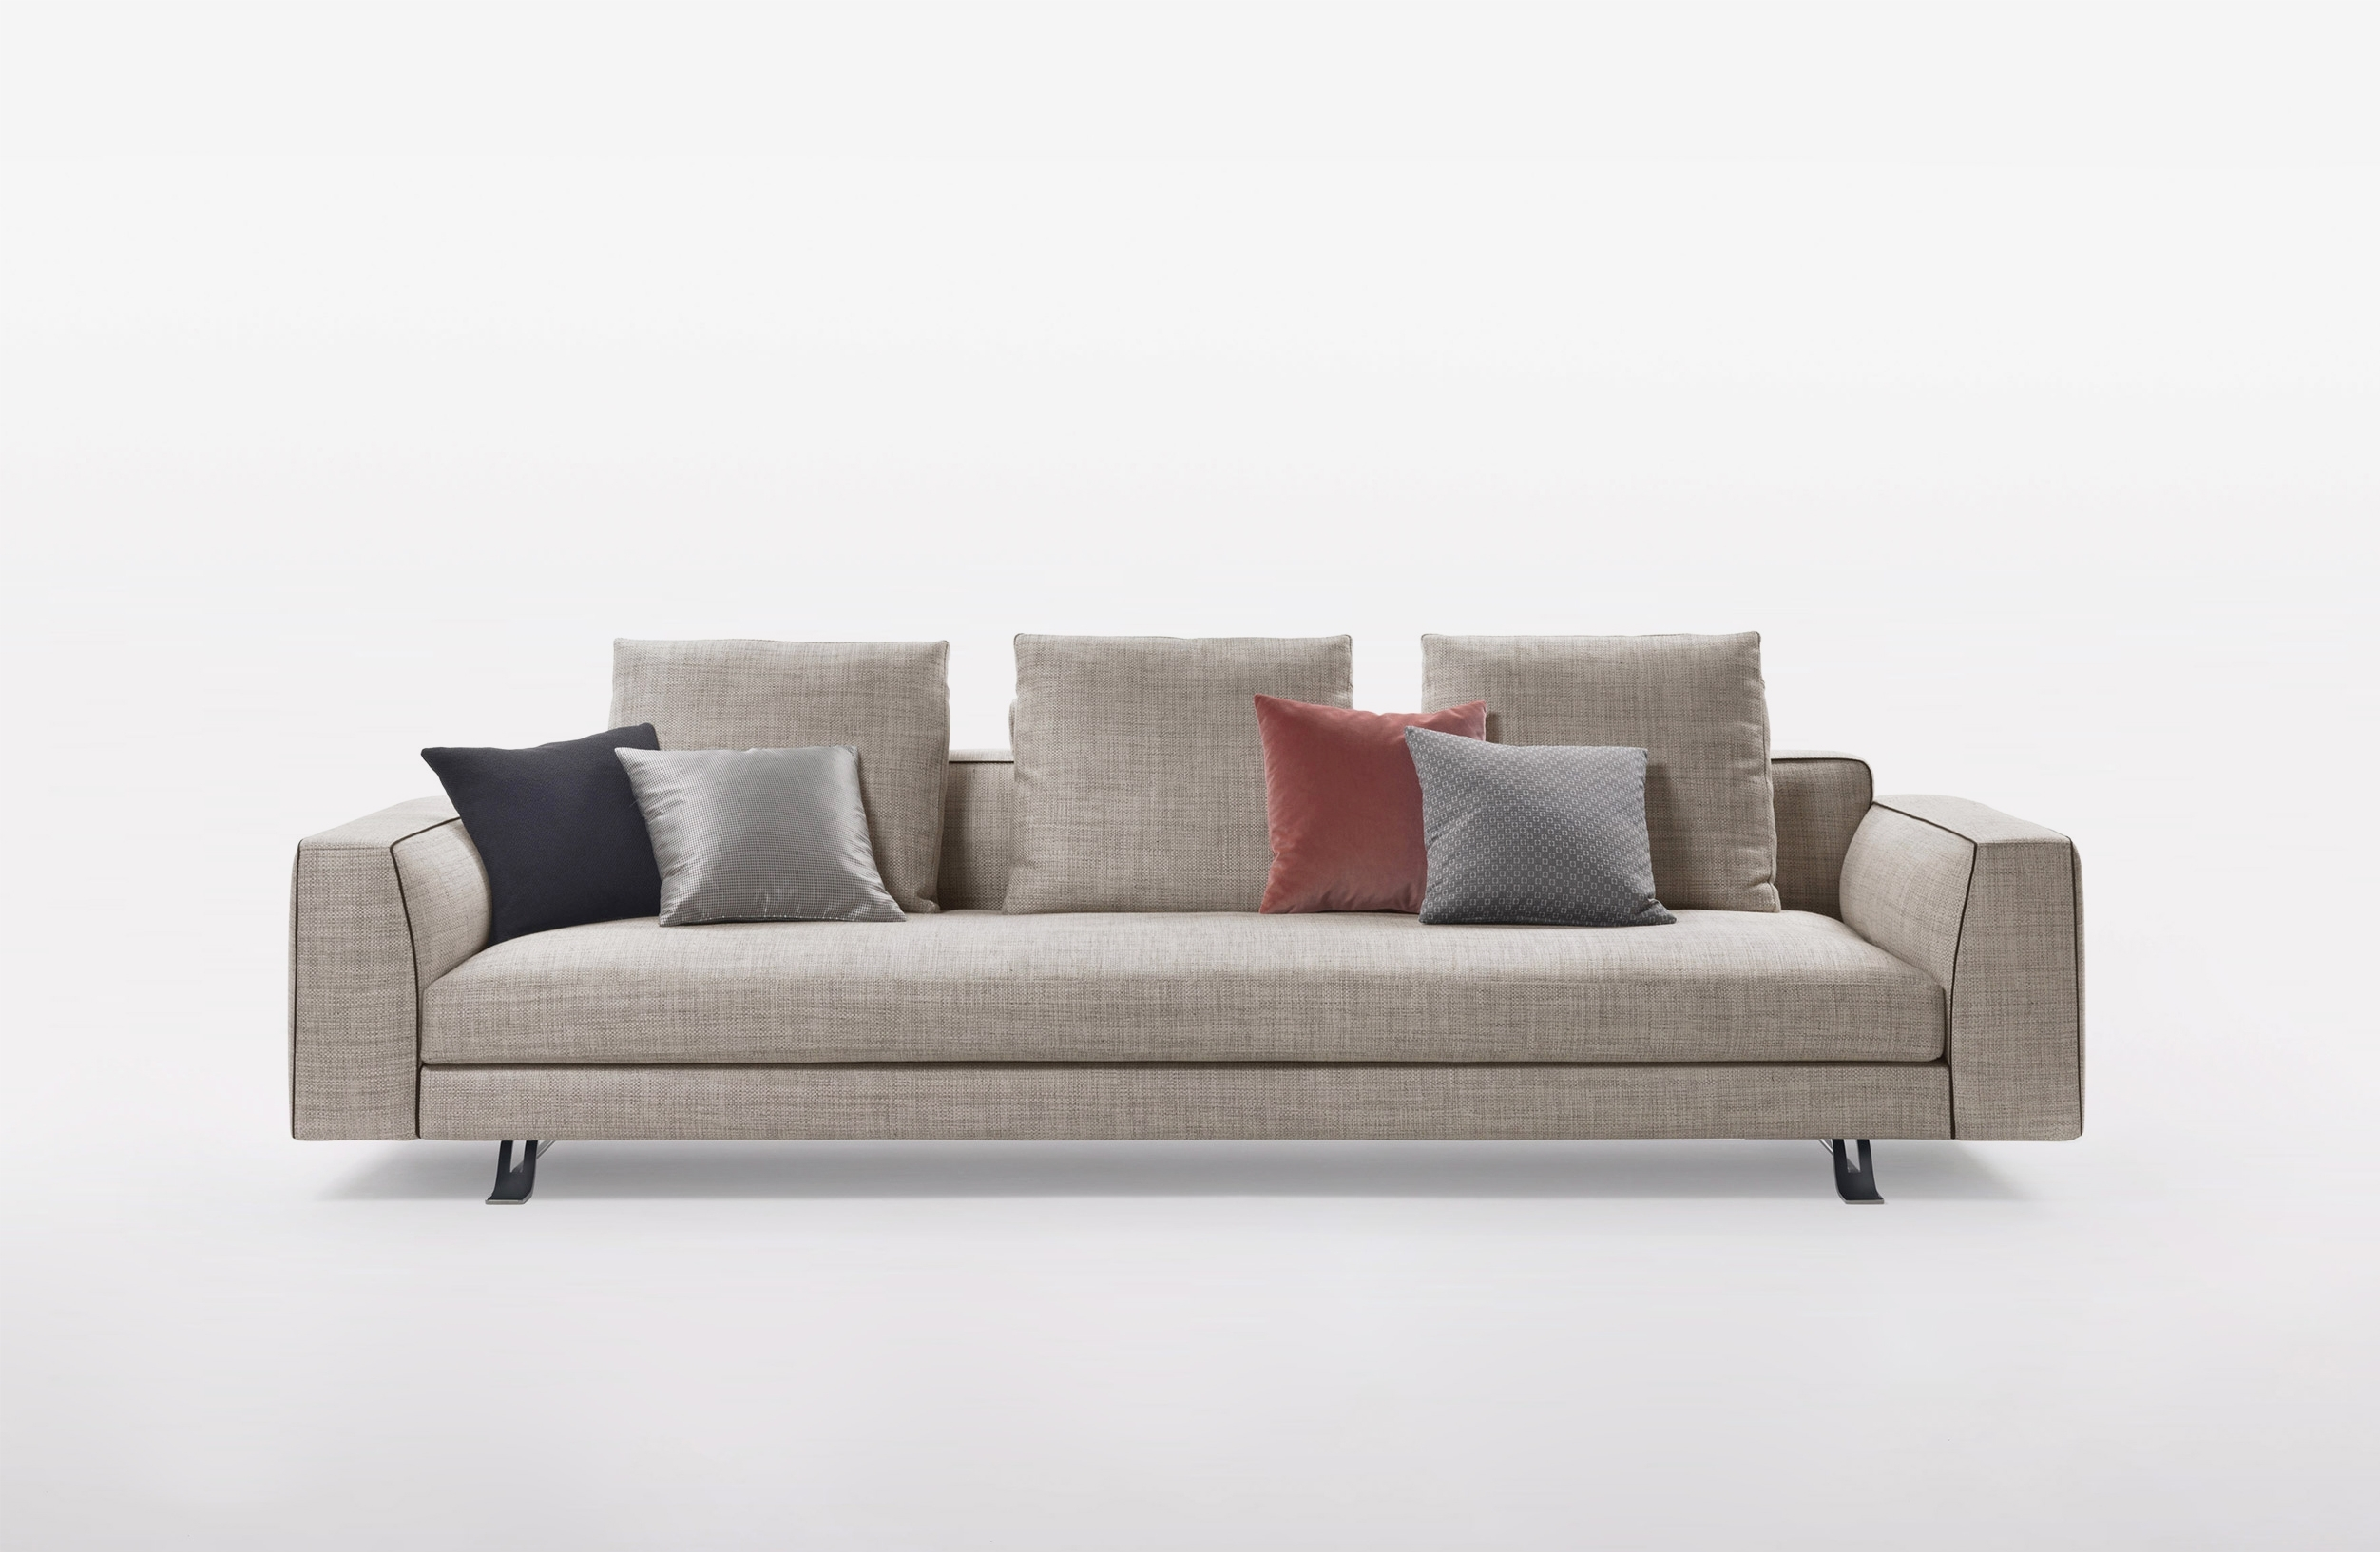 Burton – Toan Nguyen In Burton Leather 3 Piece Sectionals With Ottoman (View 22 of 25)